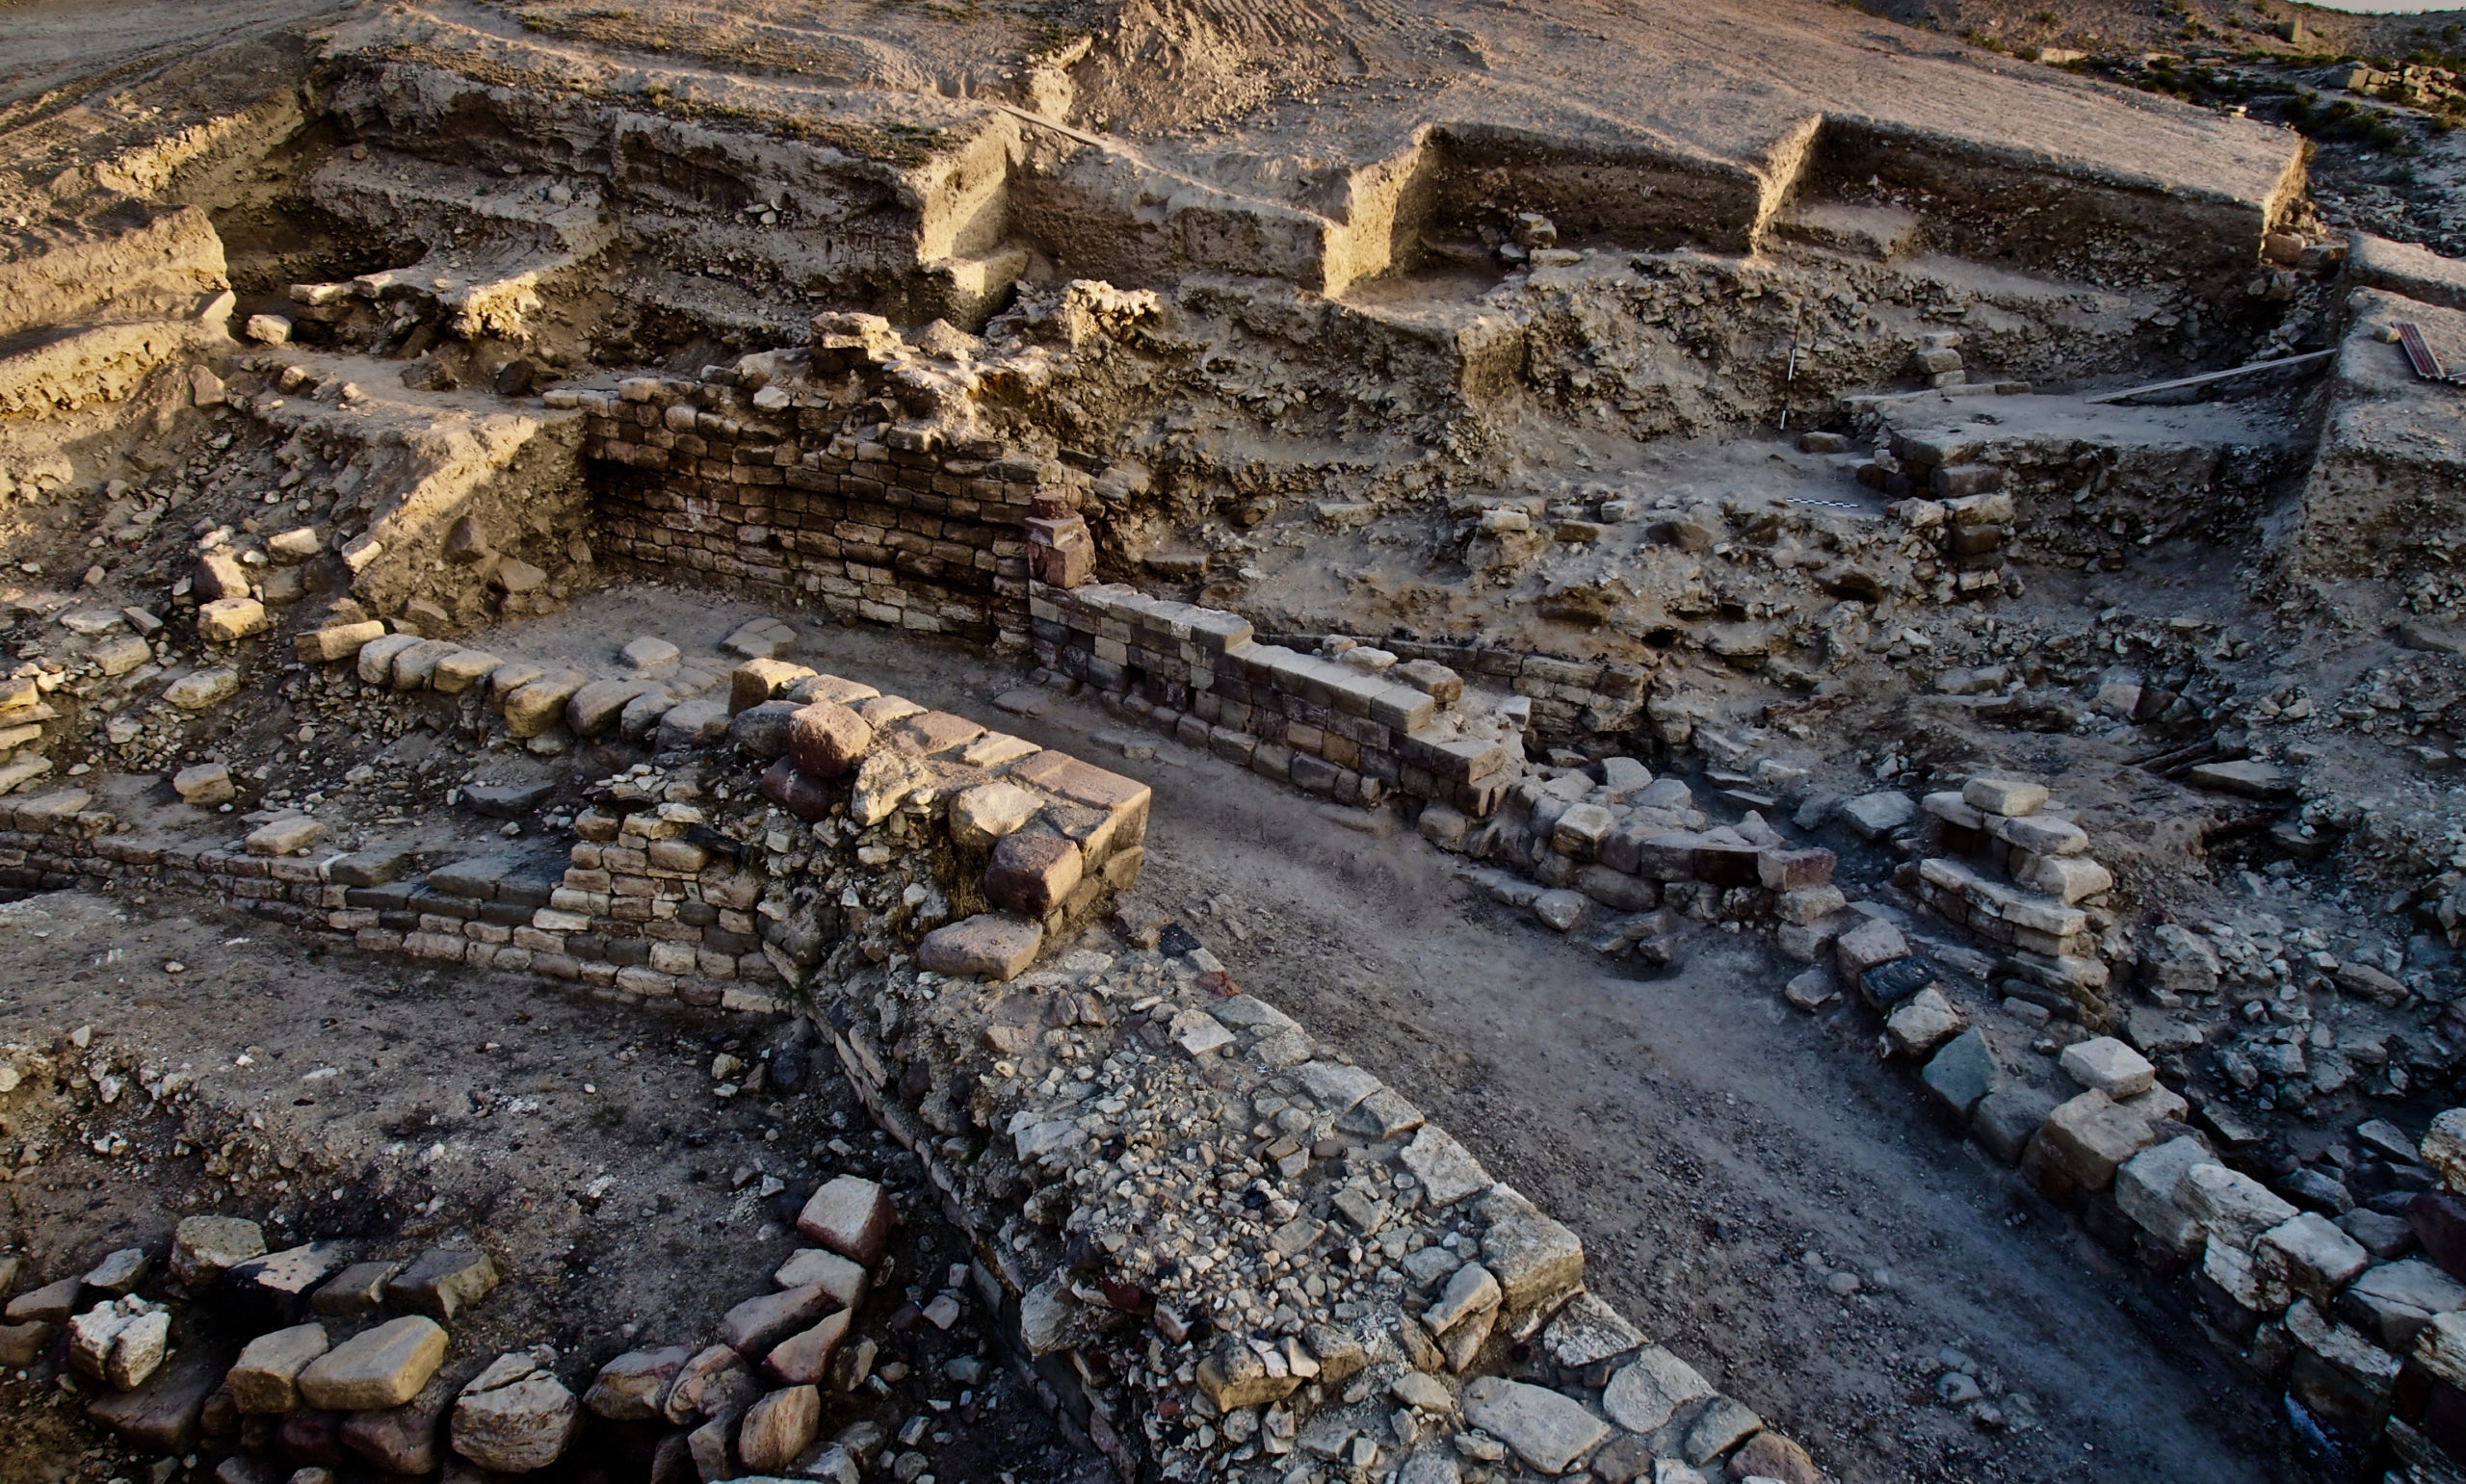 Unearthing the City of King Midas